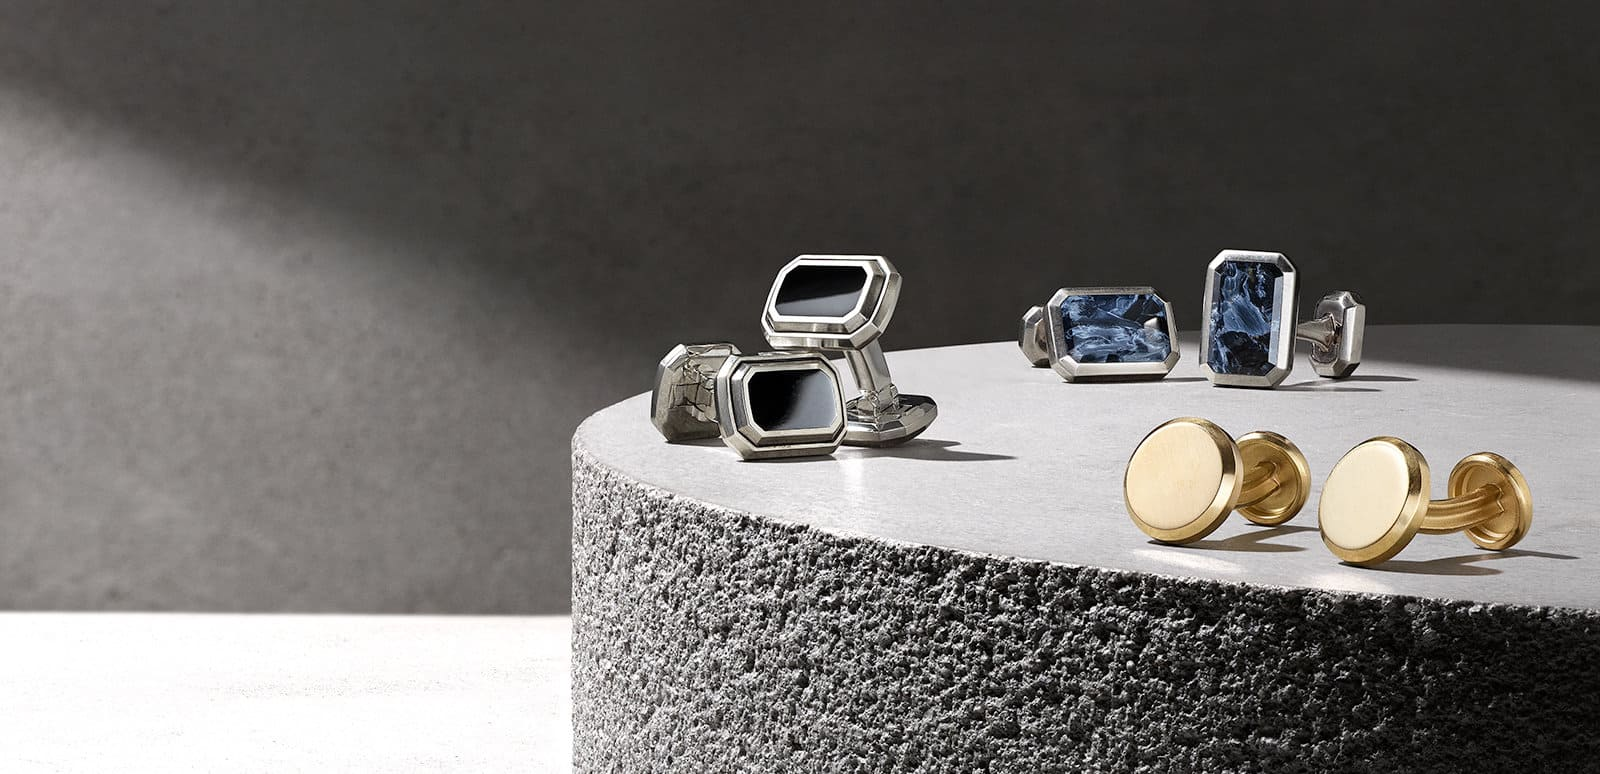 David Yurman Deco and Streamline cufflinks in sterling silver with black onyx or pietersite, or in 18K gold, in the light on top of a polished white stone with a curved, textured side.